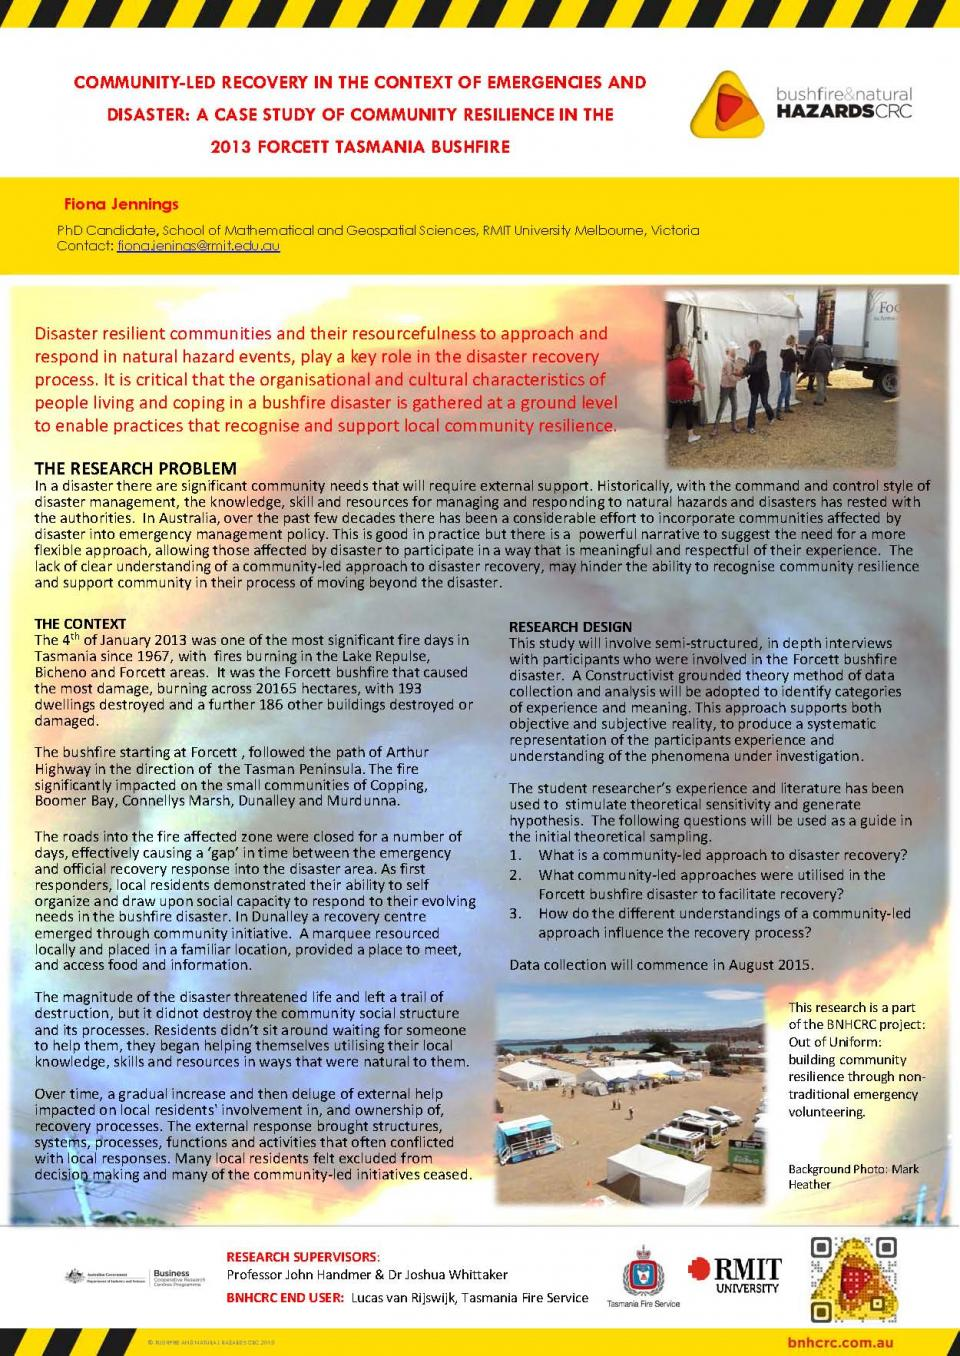 Community-led recovery in the context of emergencies and disaster